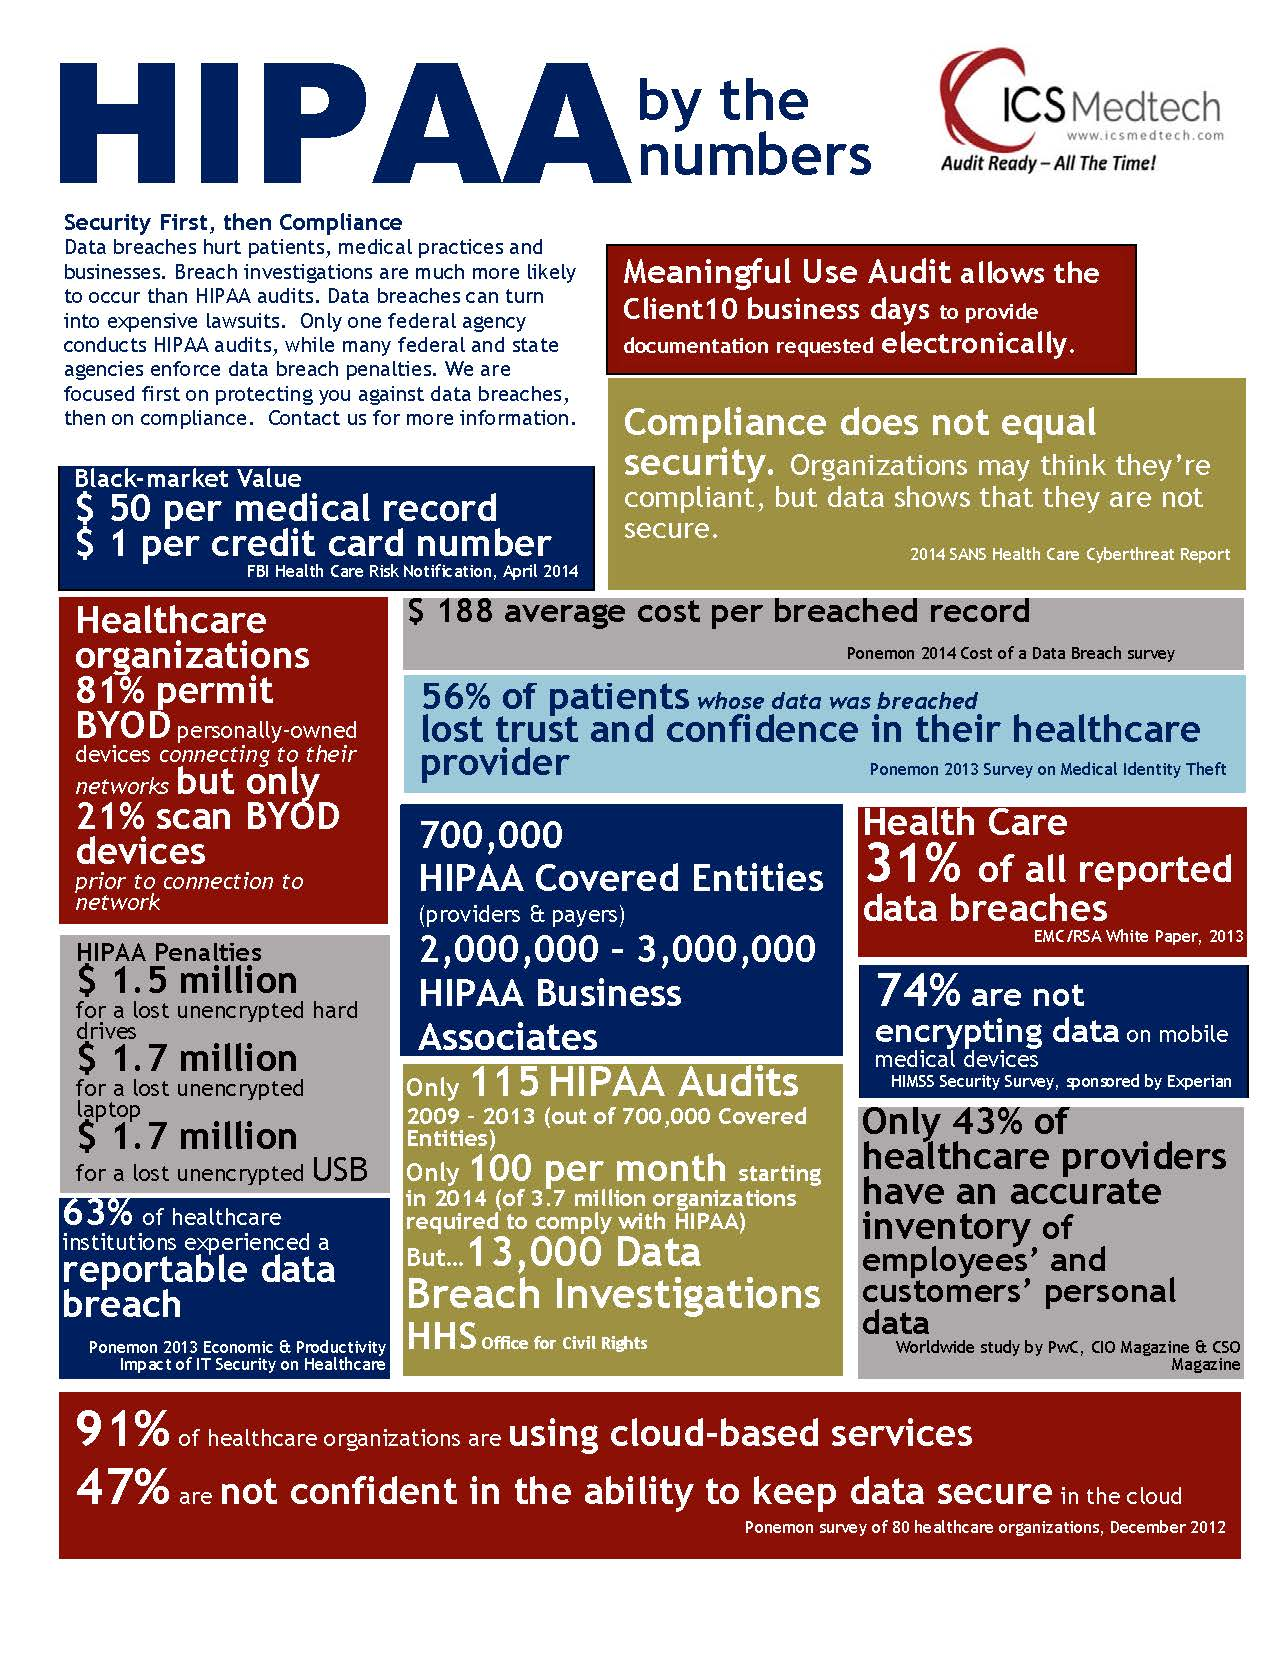 HIPAA by the Numbers